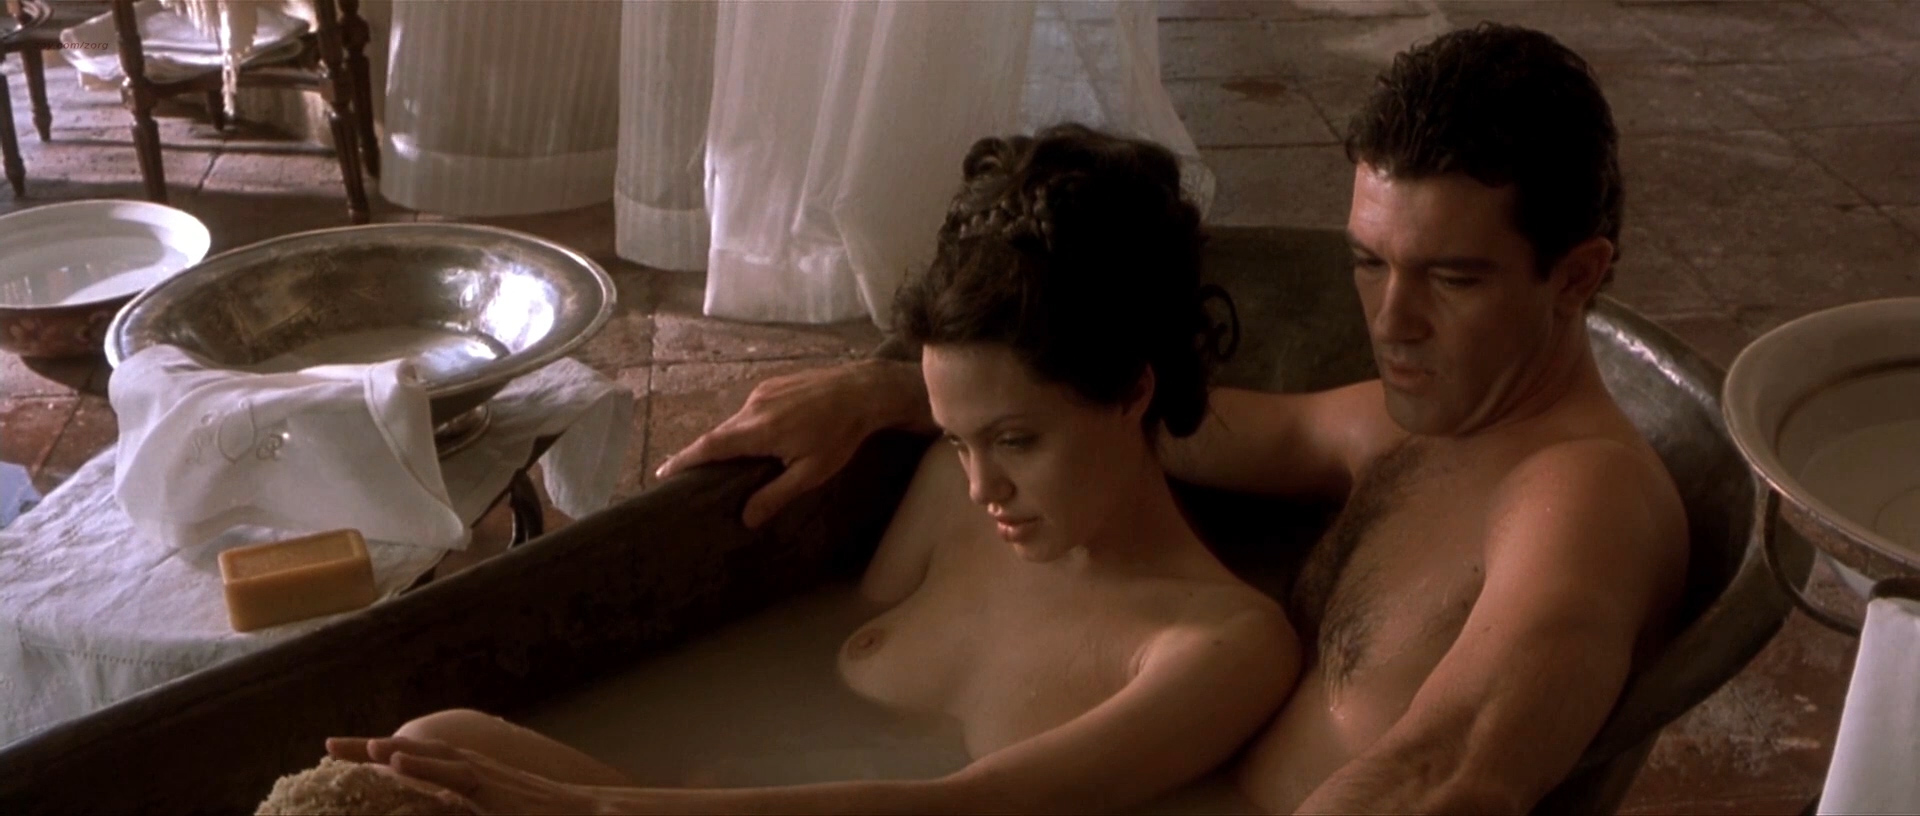 Celebrity nude and famous angelina jolie